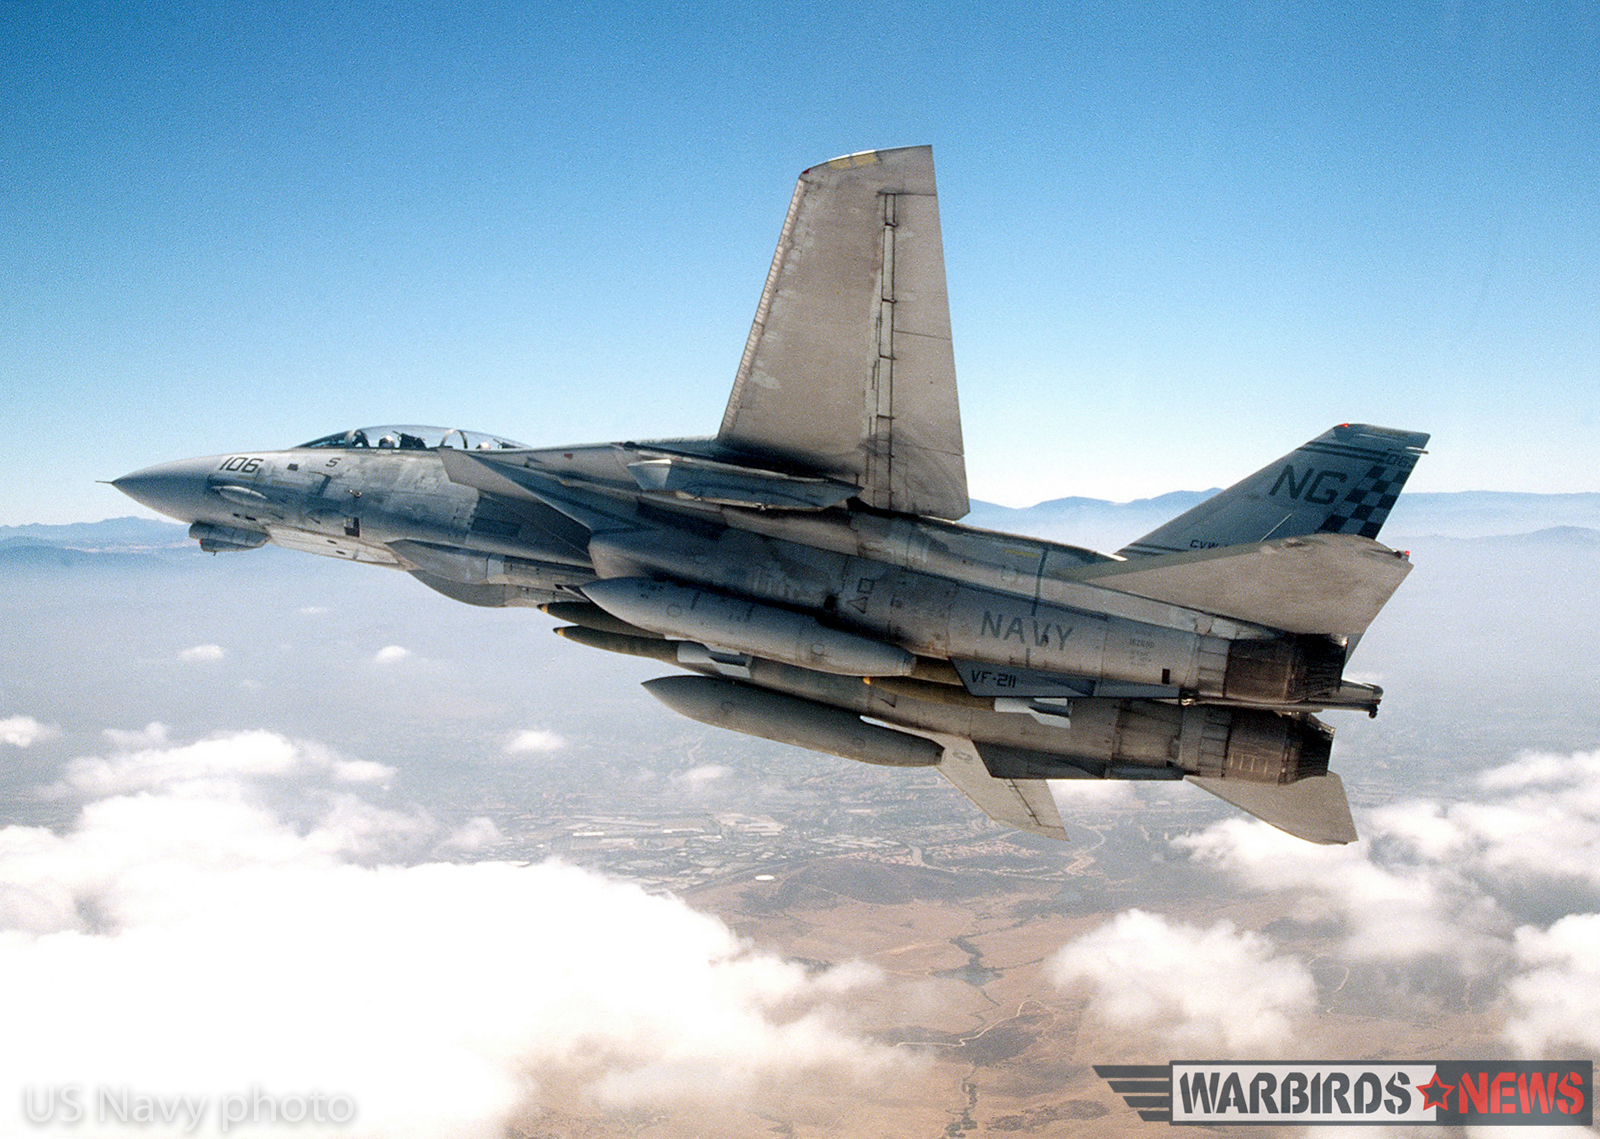 "Twenty Nine Palms, Calif. (Jul. 17, 1996) -- An F-14A ""Tomcat"" assigned to the ""Checkmates"" of Fighter Squadron Two One One (VF-211) prepares to make a bombing run at Twenty Nine Palms Marine Corps Station. The aircraft is on a routine training mission and is loaded with four MK-82 500-pound bombs. U.S. Navy photo by Photographer's Mate 1st Class Mahlon K. Miller. (RELEASED)"